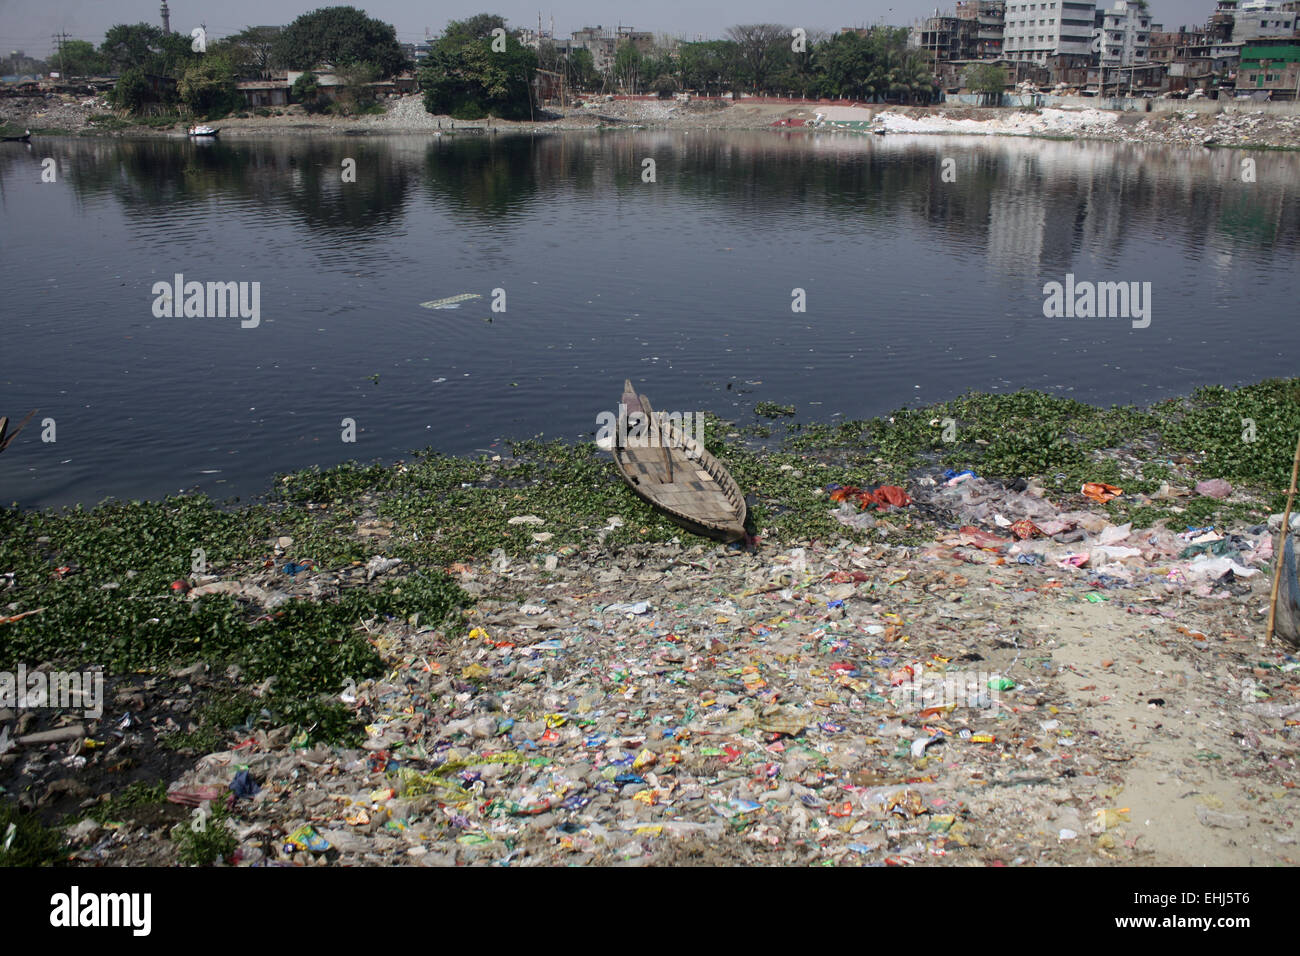 Boats in the in the polluted Buriganga River. Water pollution in the Buriganga River has reached alarming levels. - Stock Image